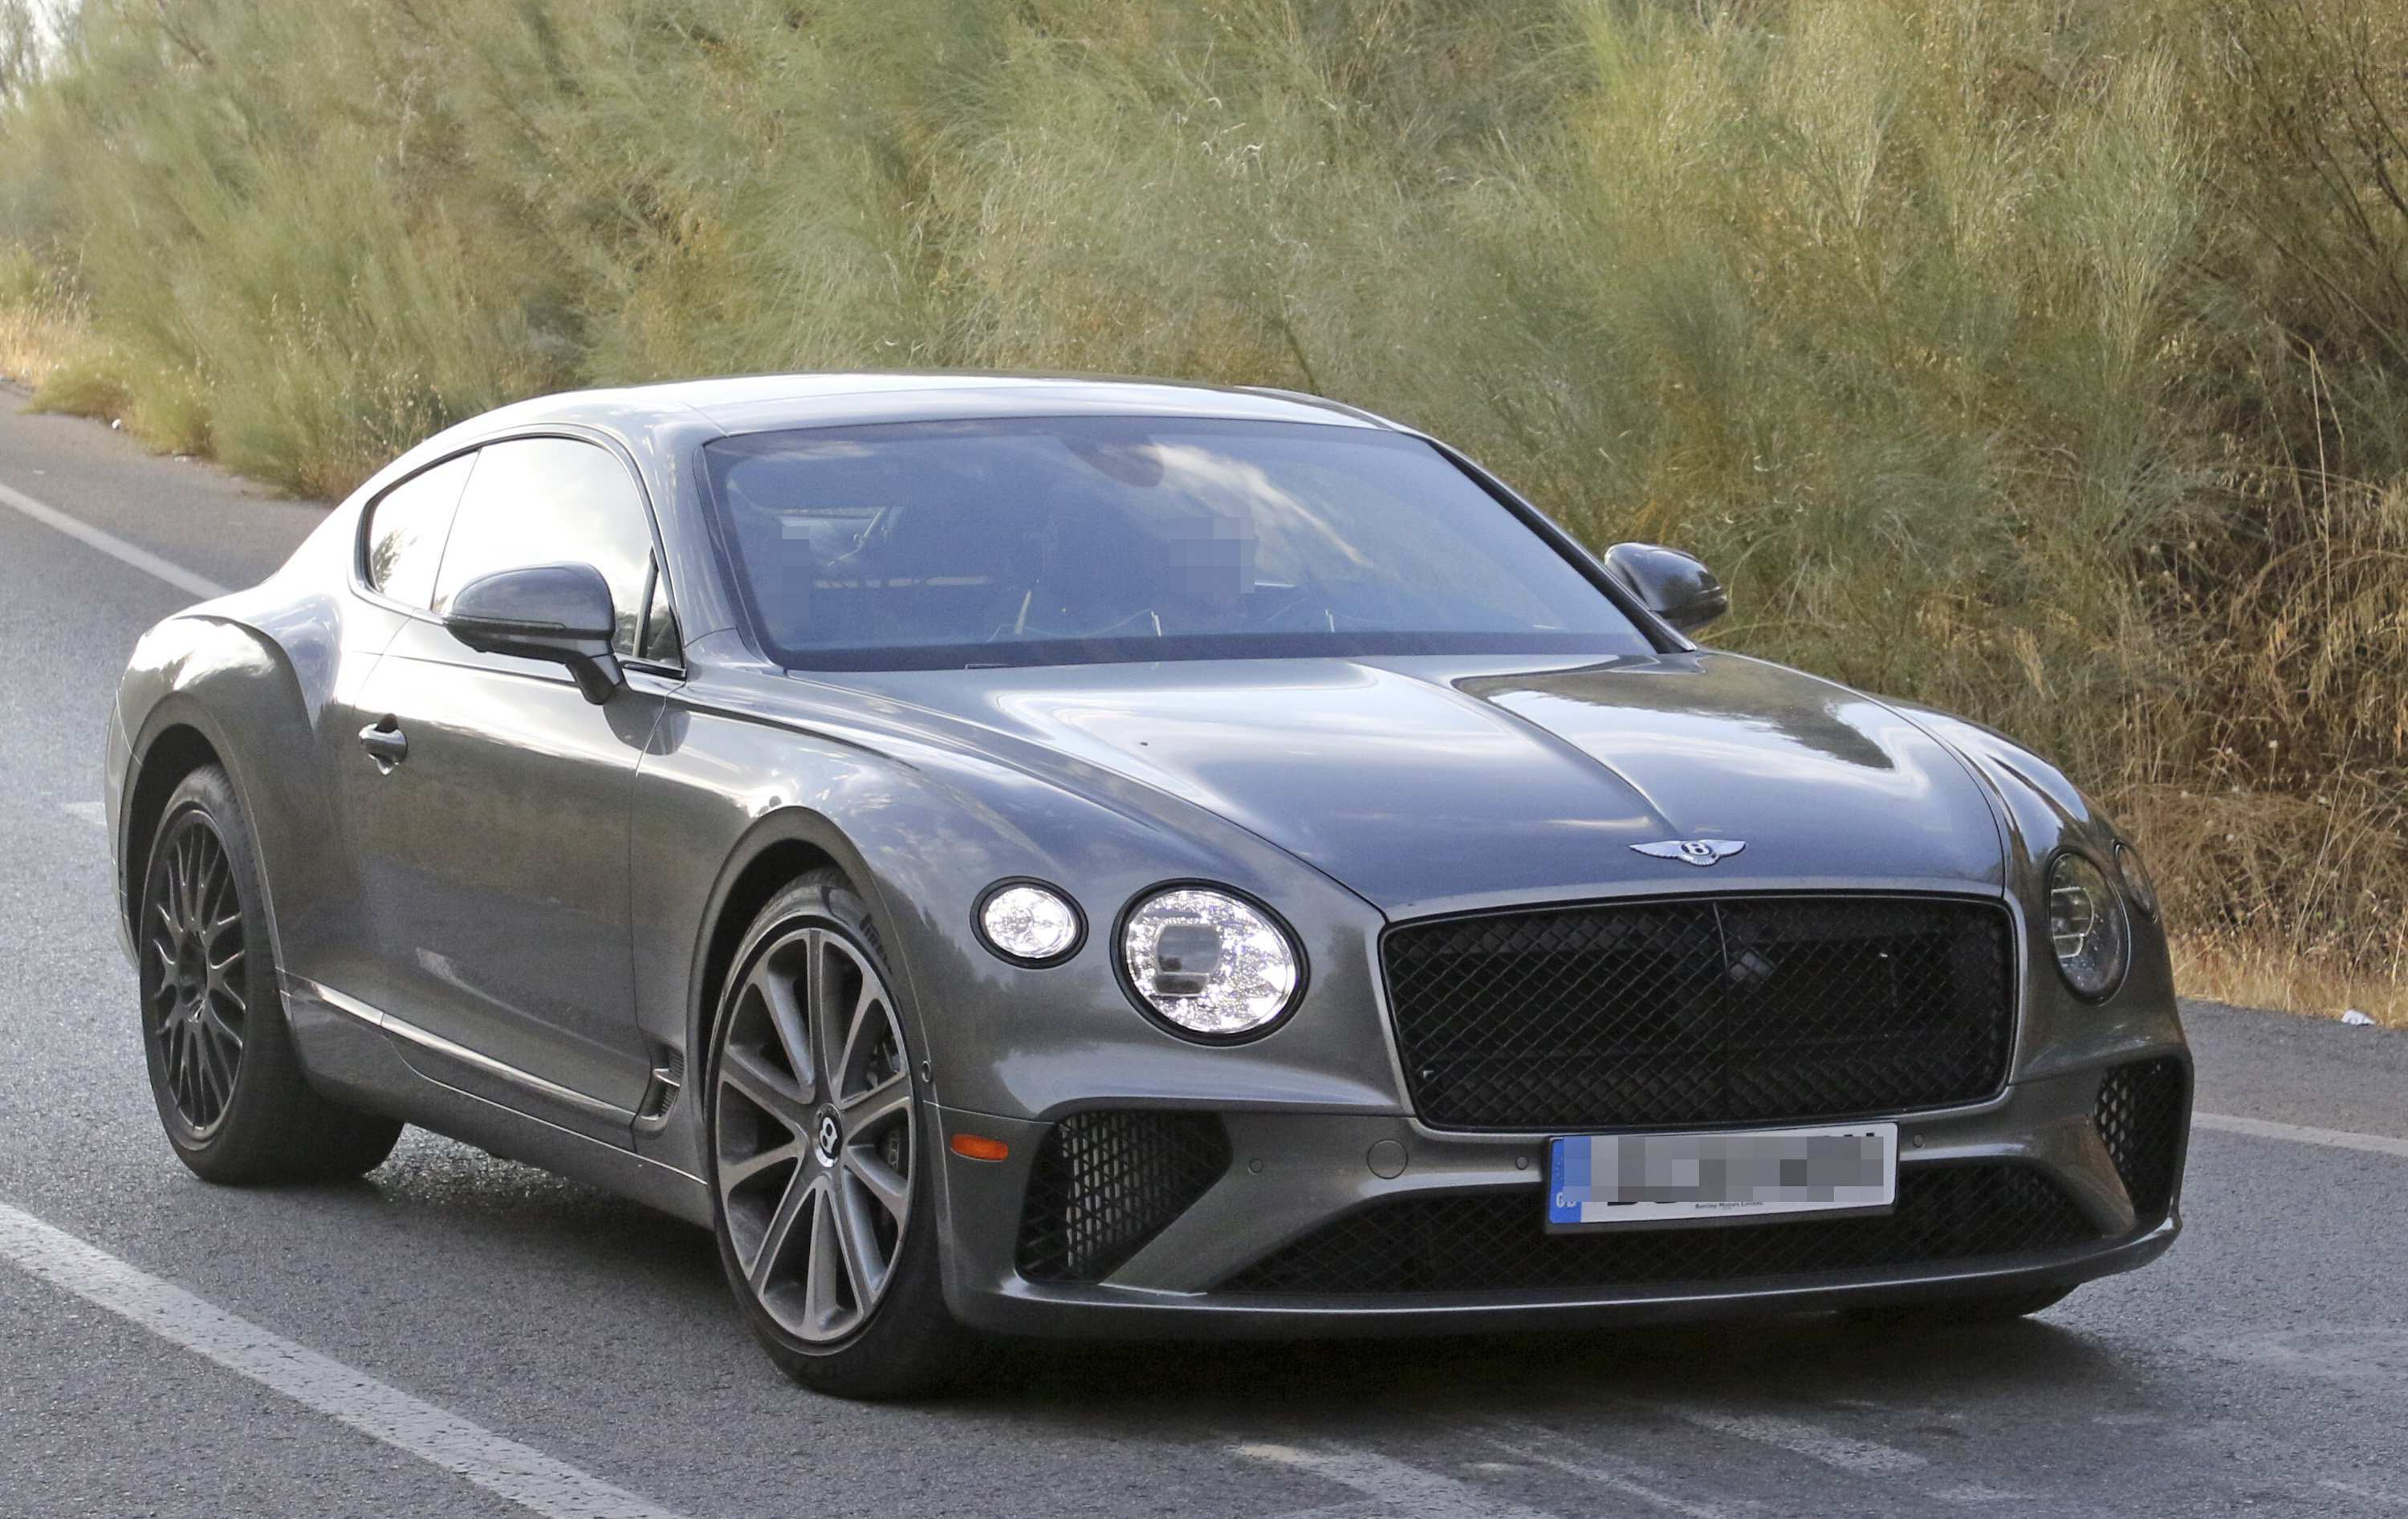 73 Gallery of 2019 Bentley Continental Gt V8 New Review by 2019 Bentley Continental Gt V8